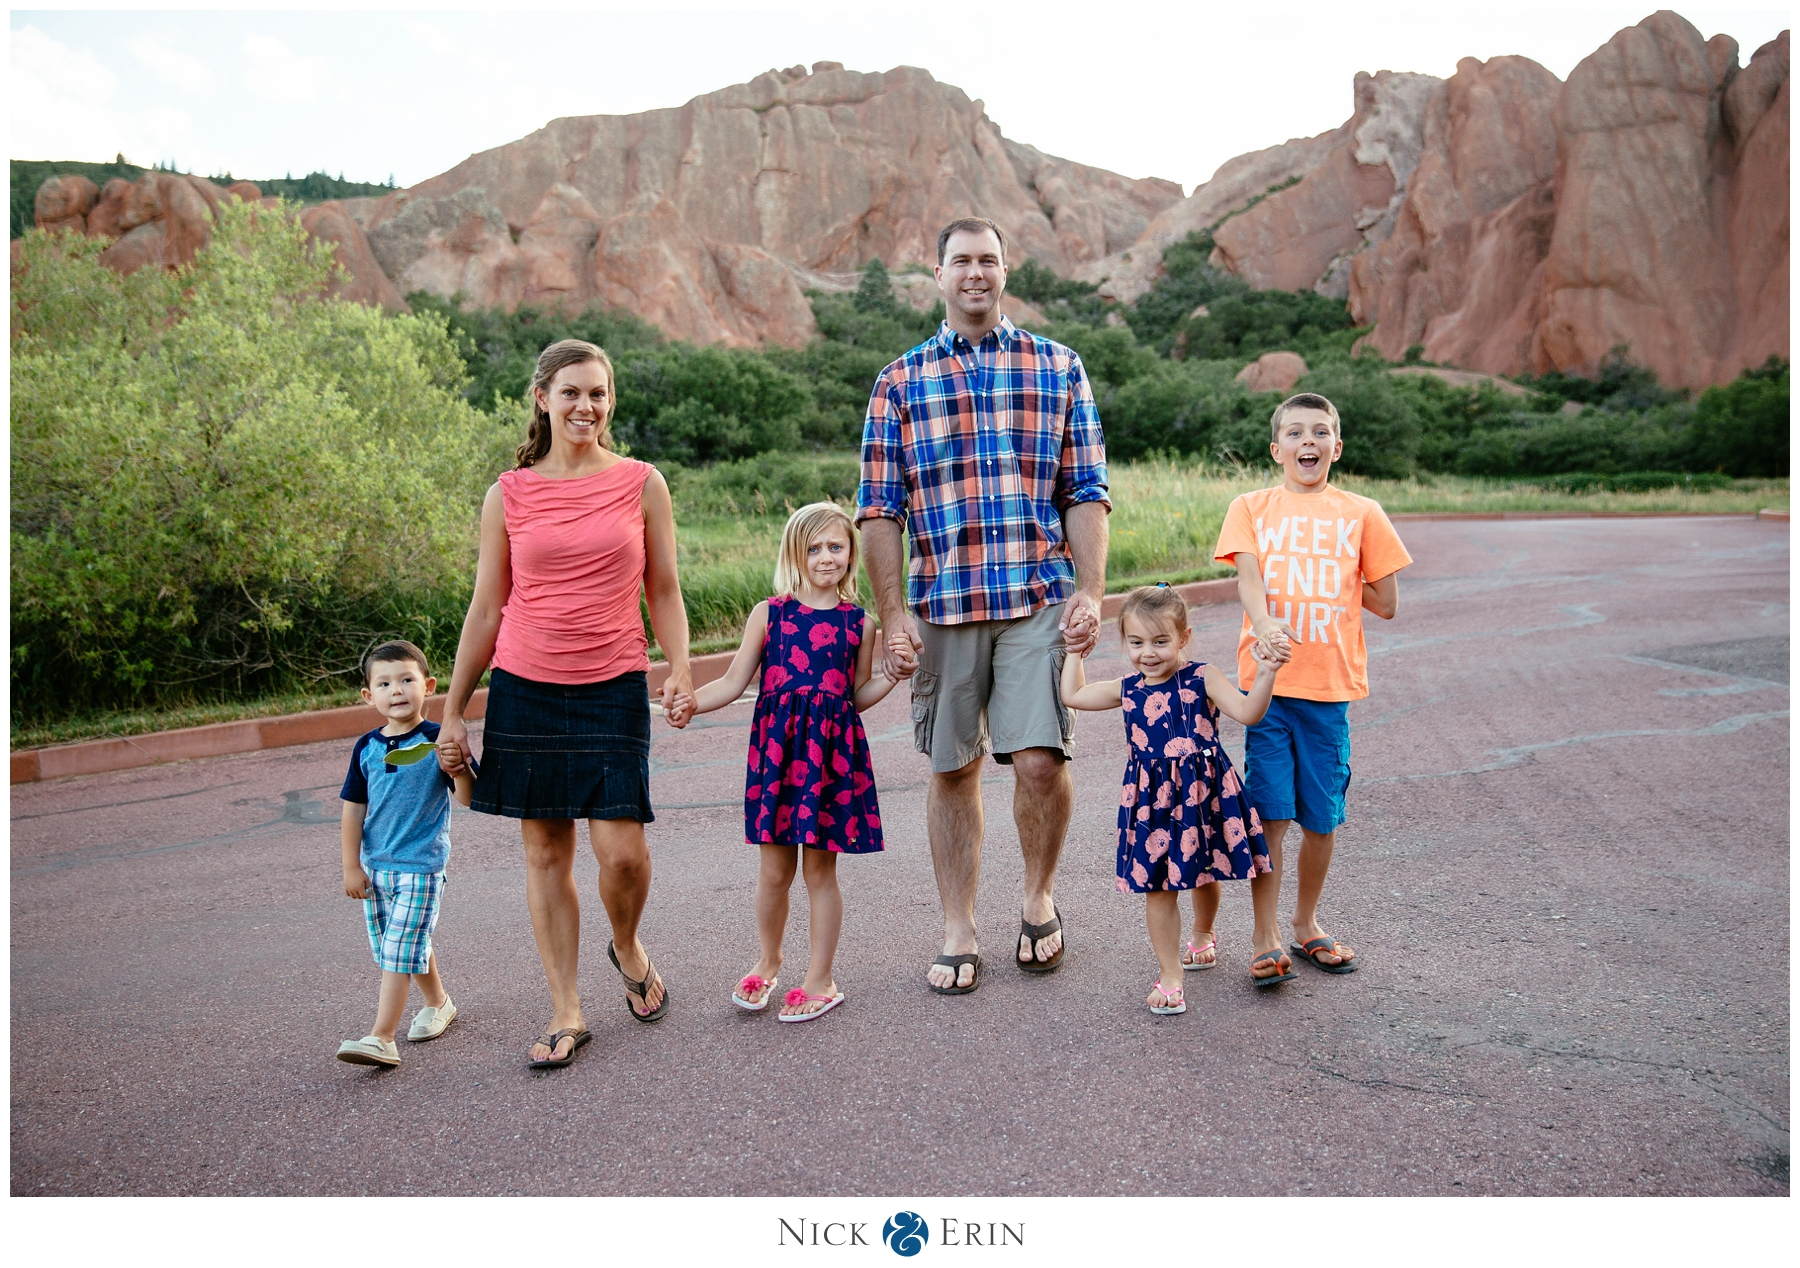 Donner_Photography_Denver Colorado Mountains Family Session_0019